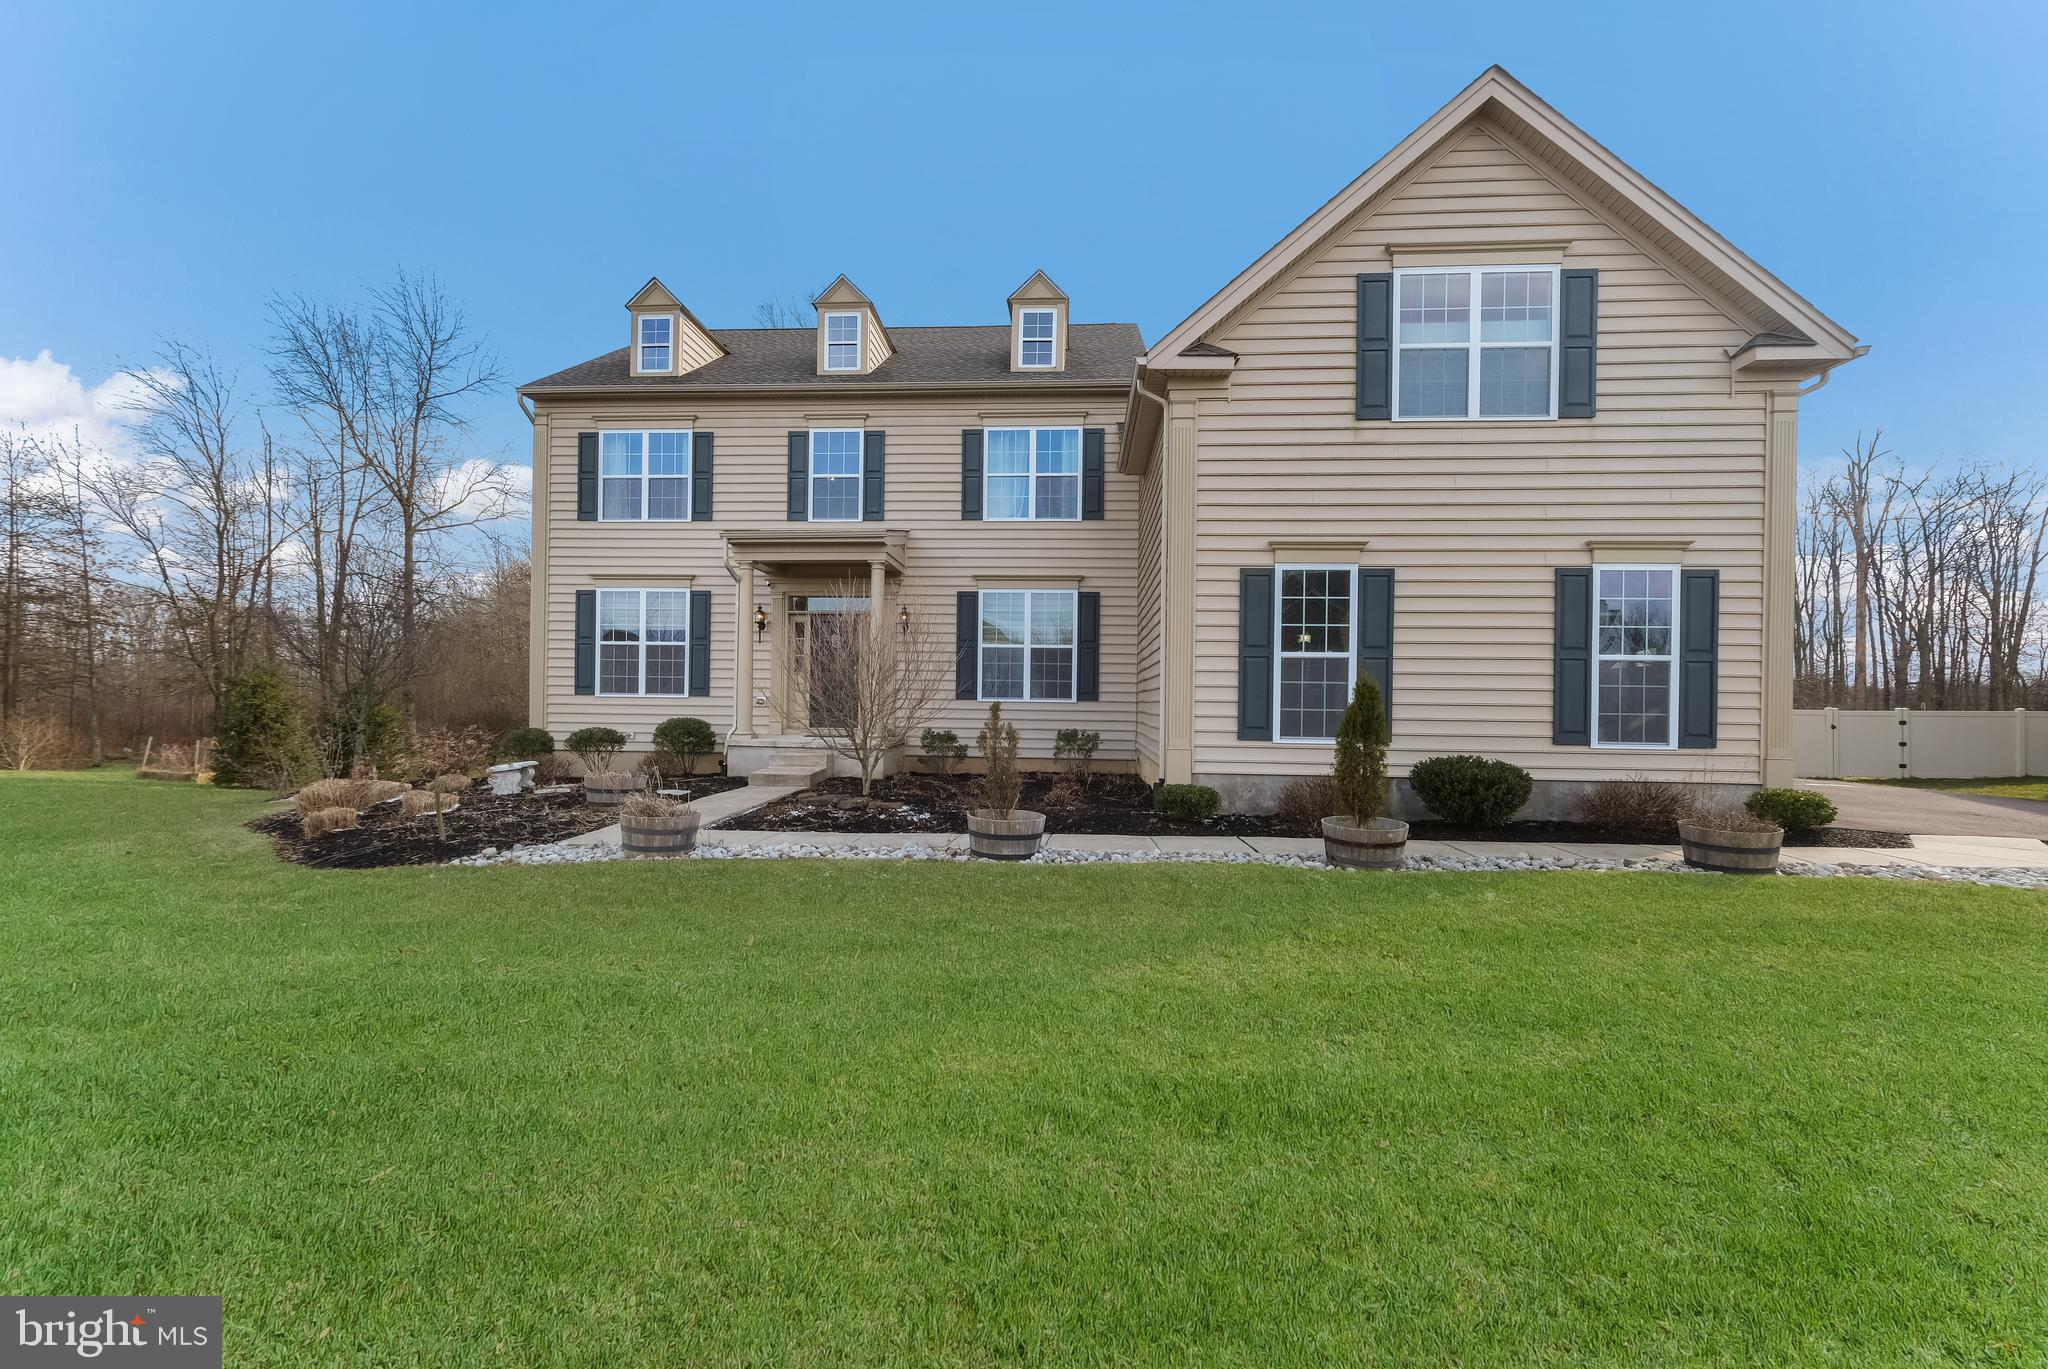 5002 KRATZ CARRIAGE ROAD, PIPERSVILLE, PA 18947